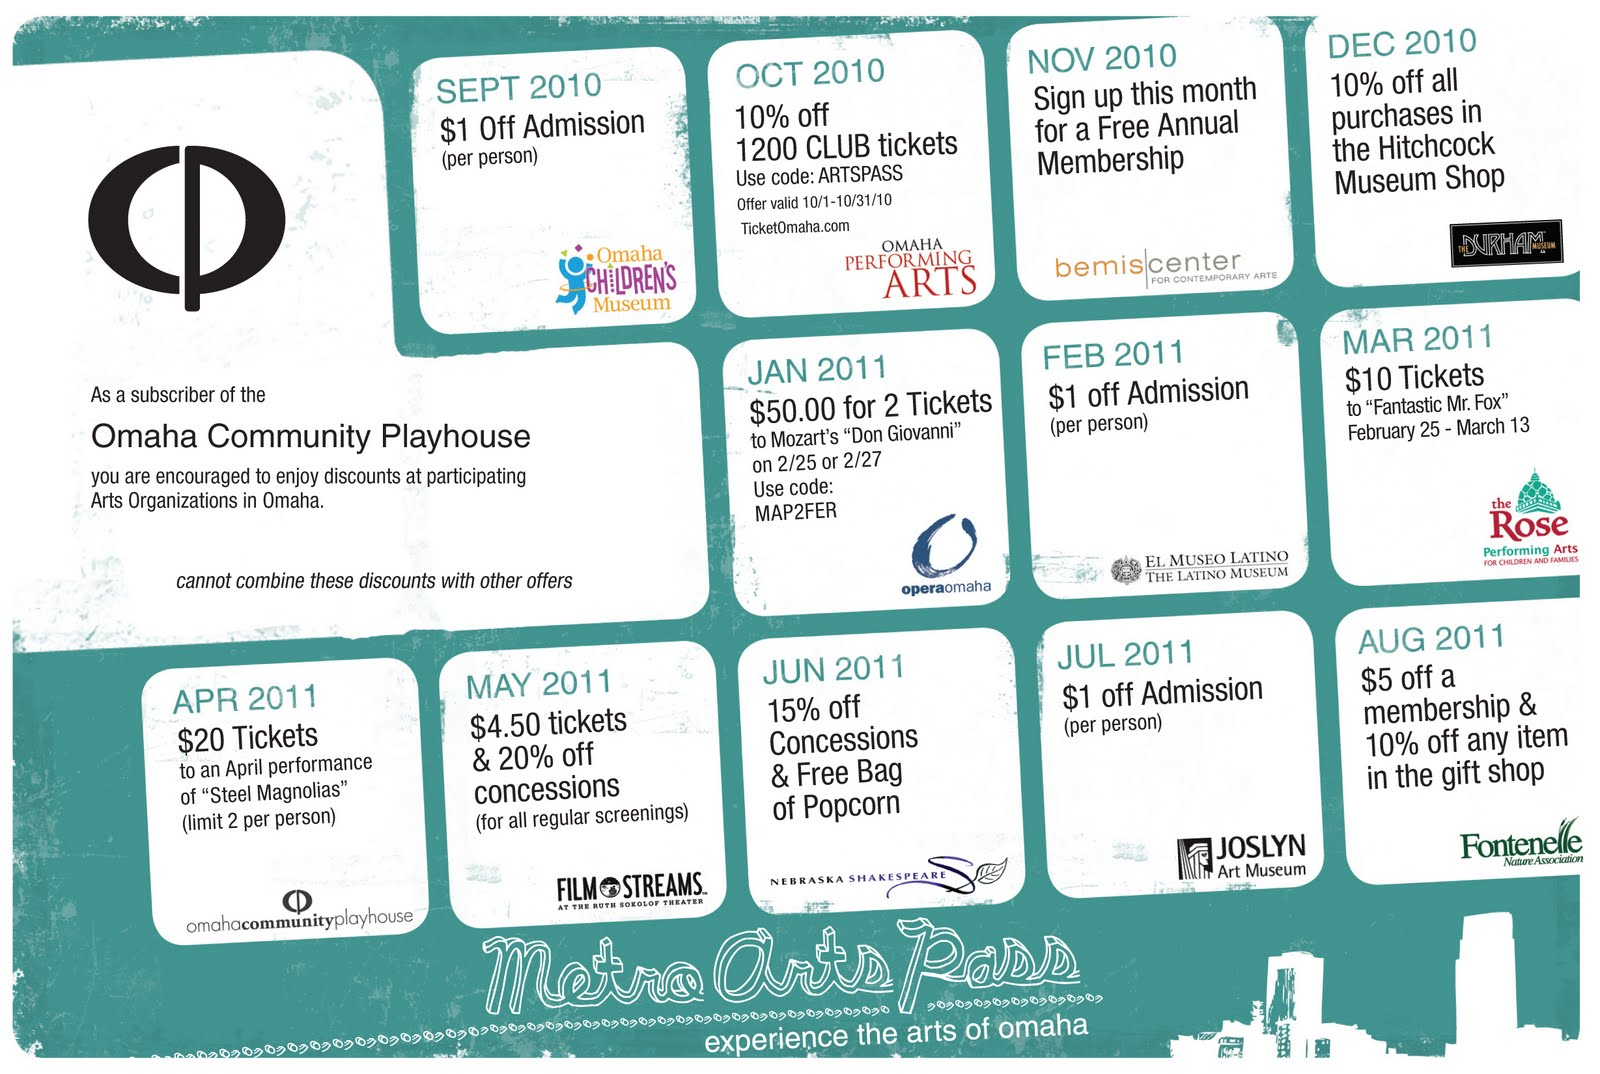 Omaha community playhouse metro arts pass the metro arts pass is a fancy little card that gives you discounts at arts organizations around omaha every month metro arts pass holders get to enjoy a fandeluxe Choice Image